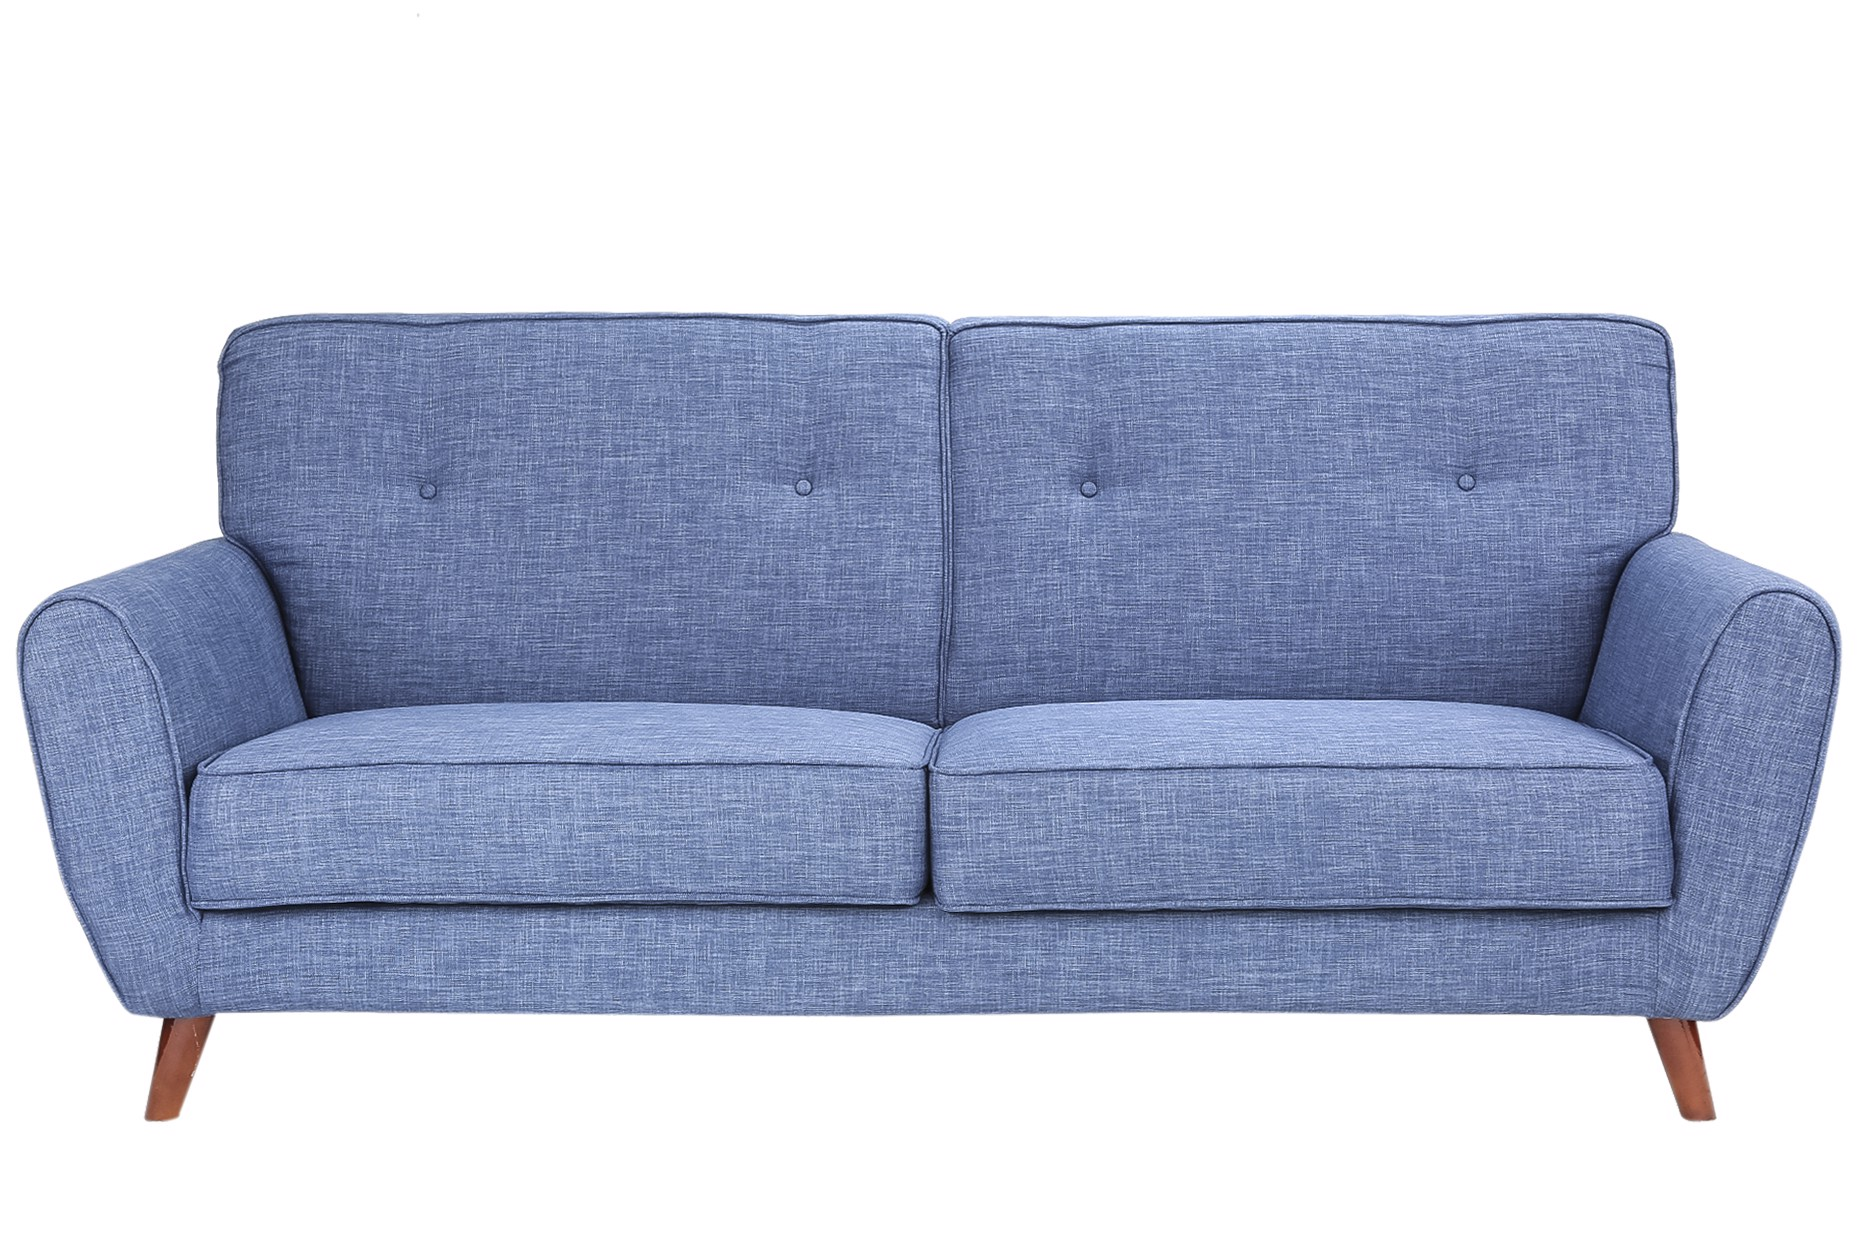 moods 3 seater leather sofa bed how many yards does it take to recover a karen seat  chuyên cung cấp đồ nội thất cao